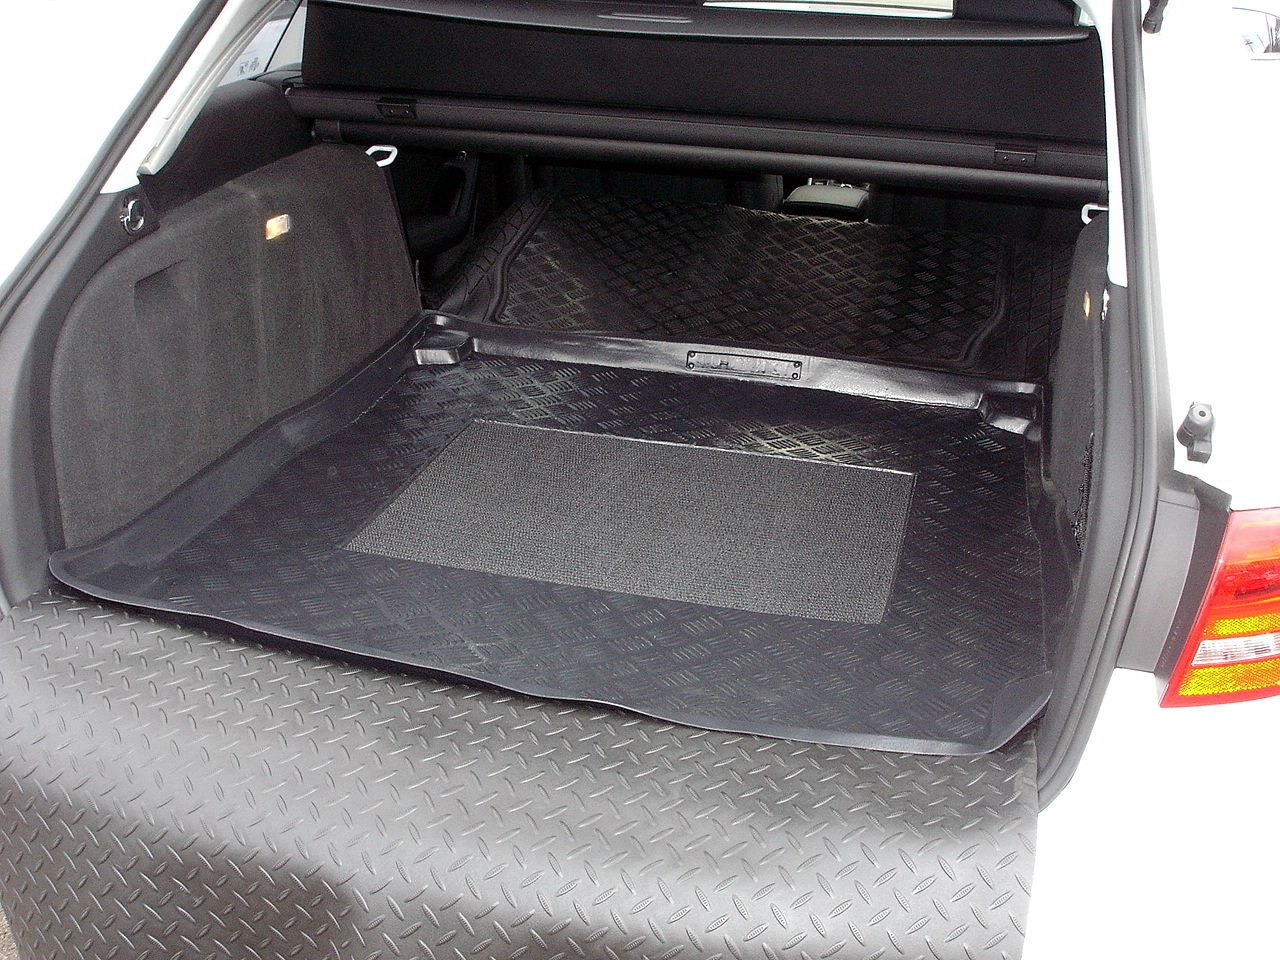 Ford Focus Estate 2011 Boot Tray Load Liner Dog Mat Bumper Guard